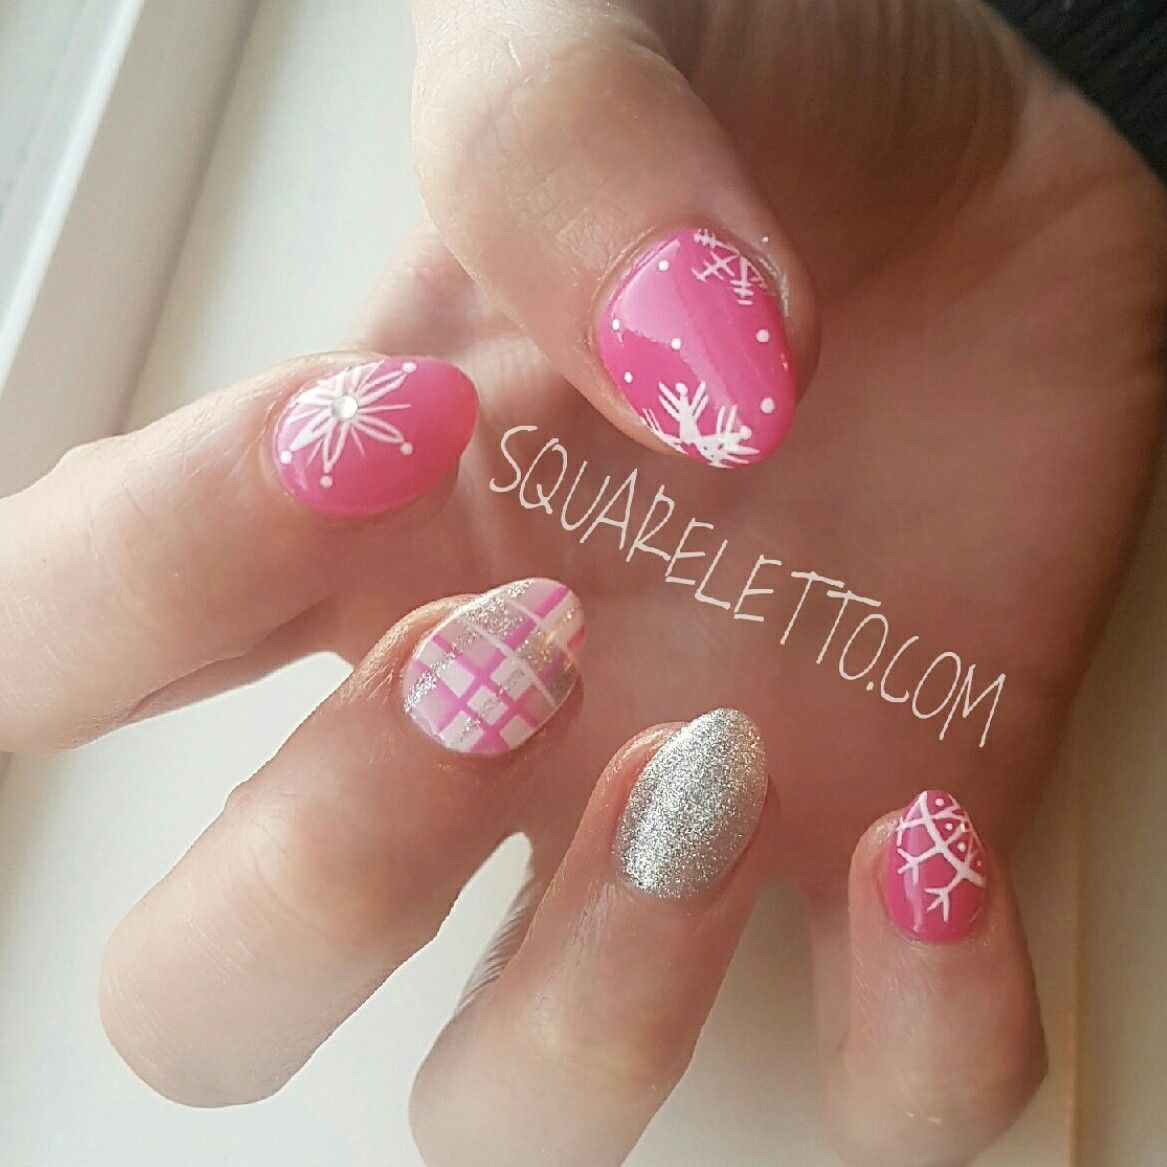 Pin by Pixie LabradOr✨ on M & P✨ | Pinterest | Nail salons and Salons